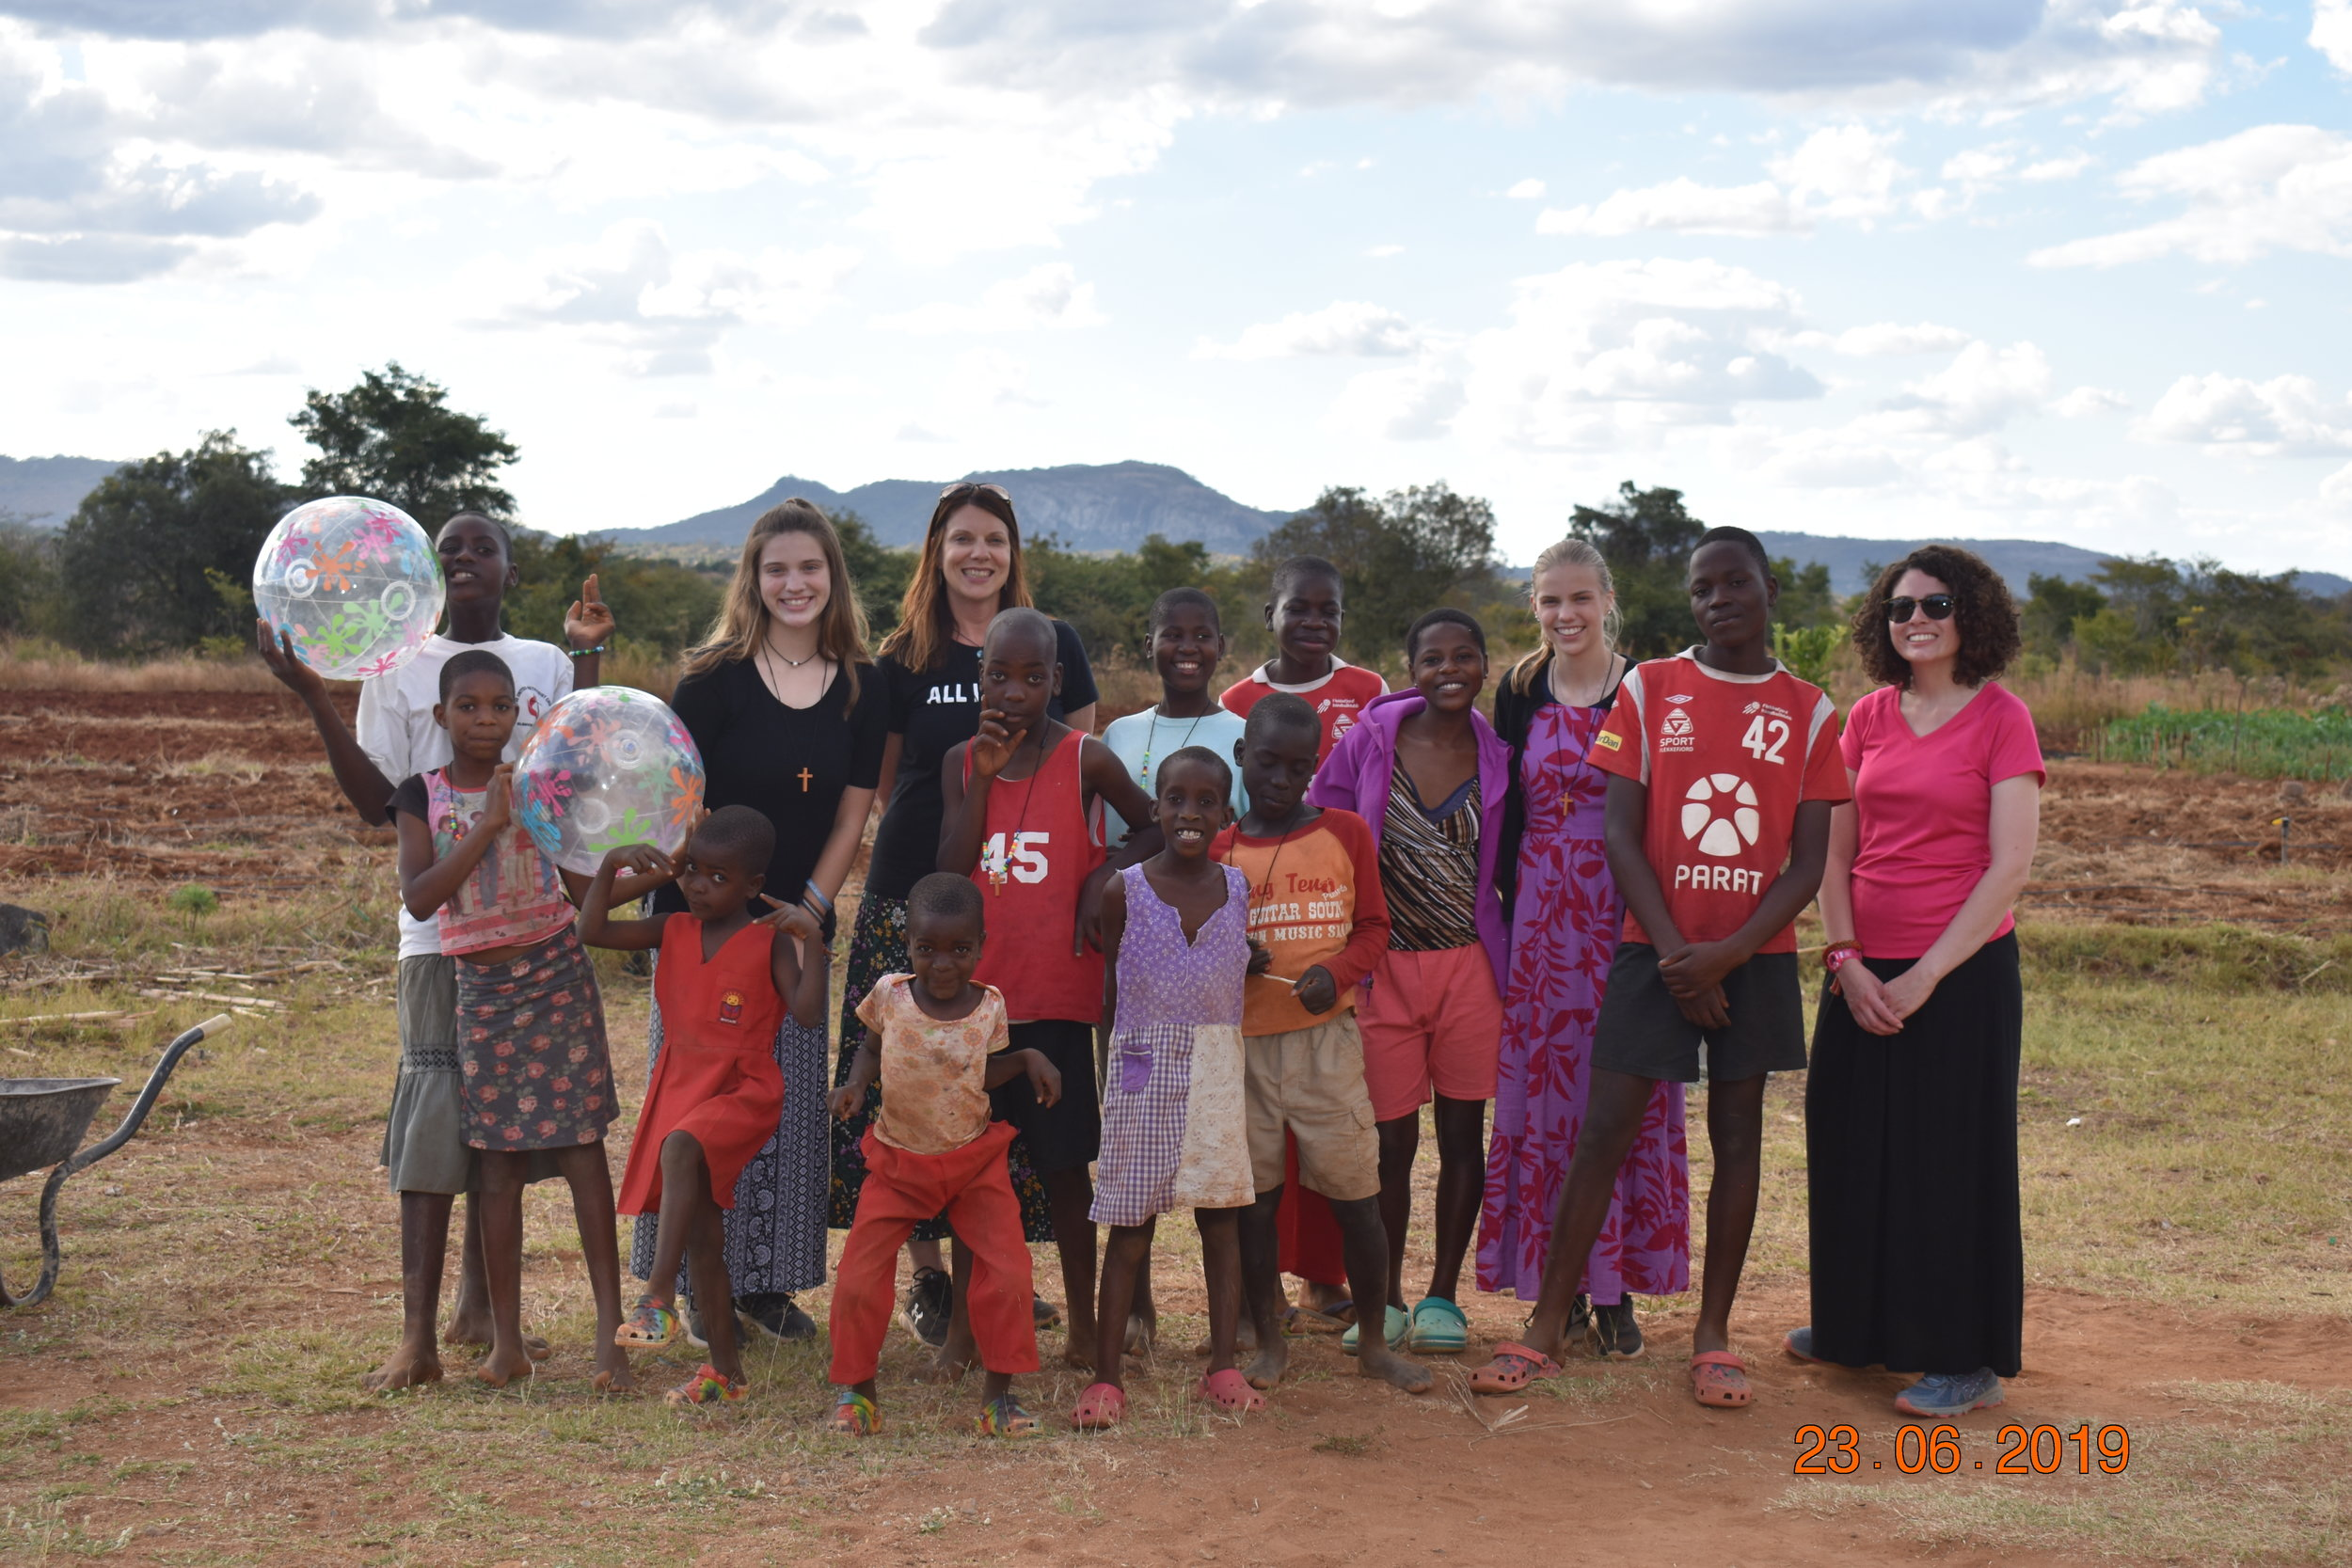 Members of the mission team alongside children in Nyadire. Photo courtesy of Tracy Ekstam.